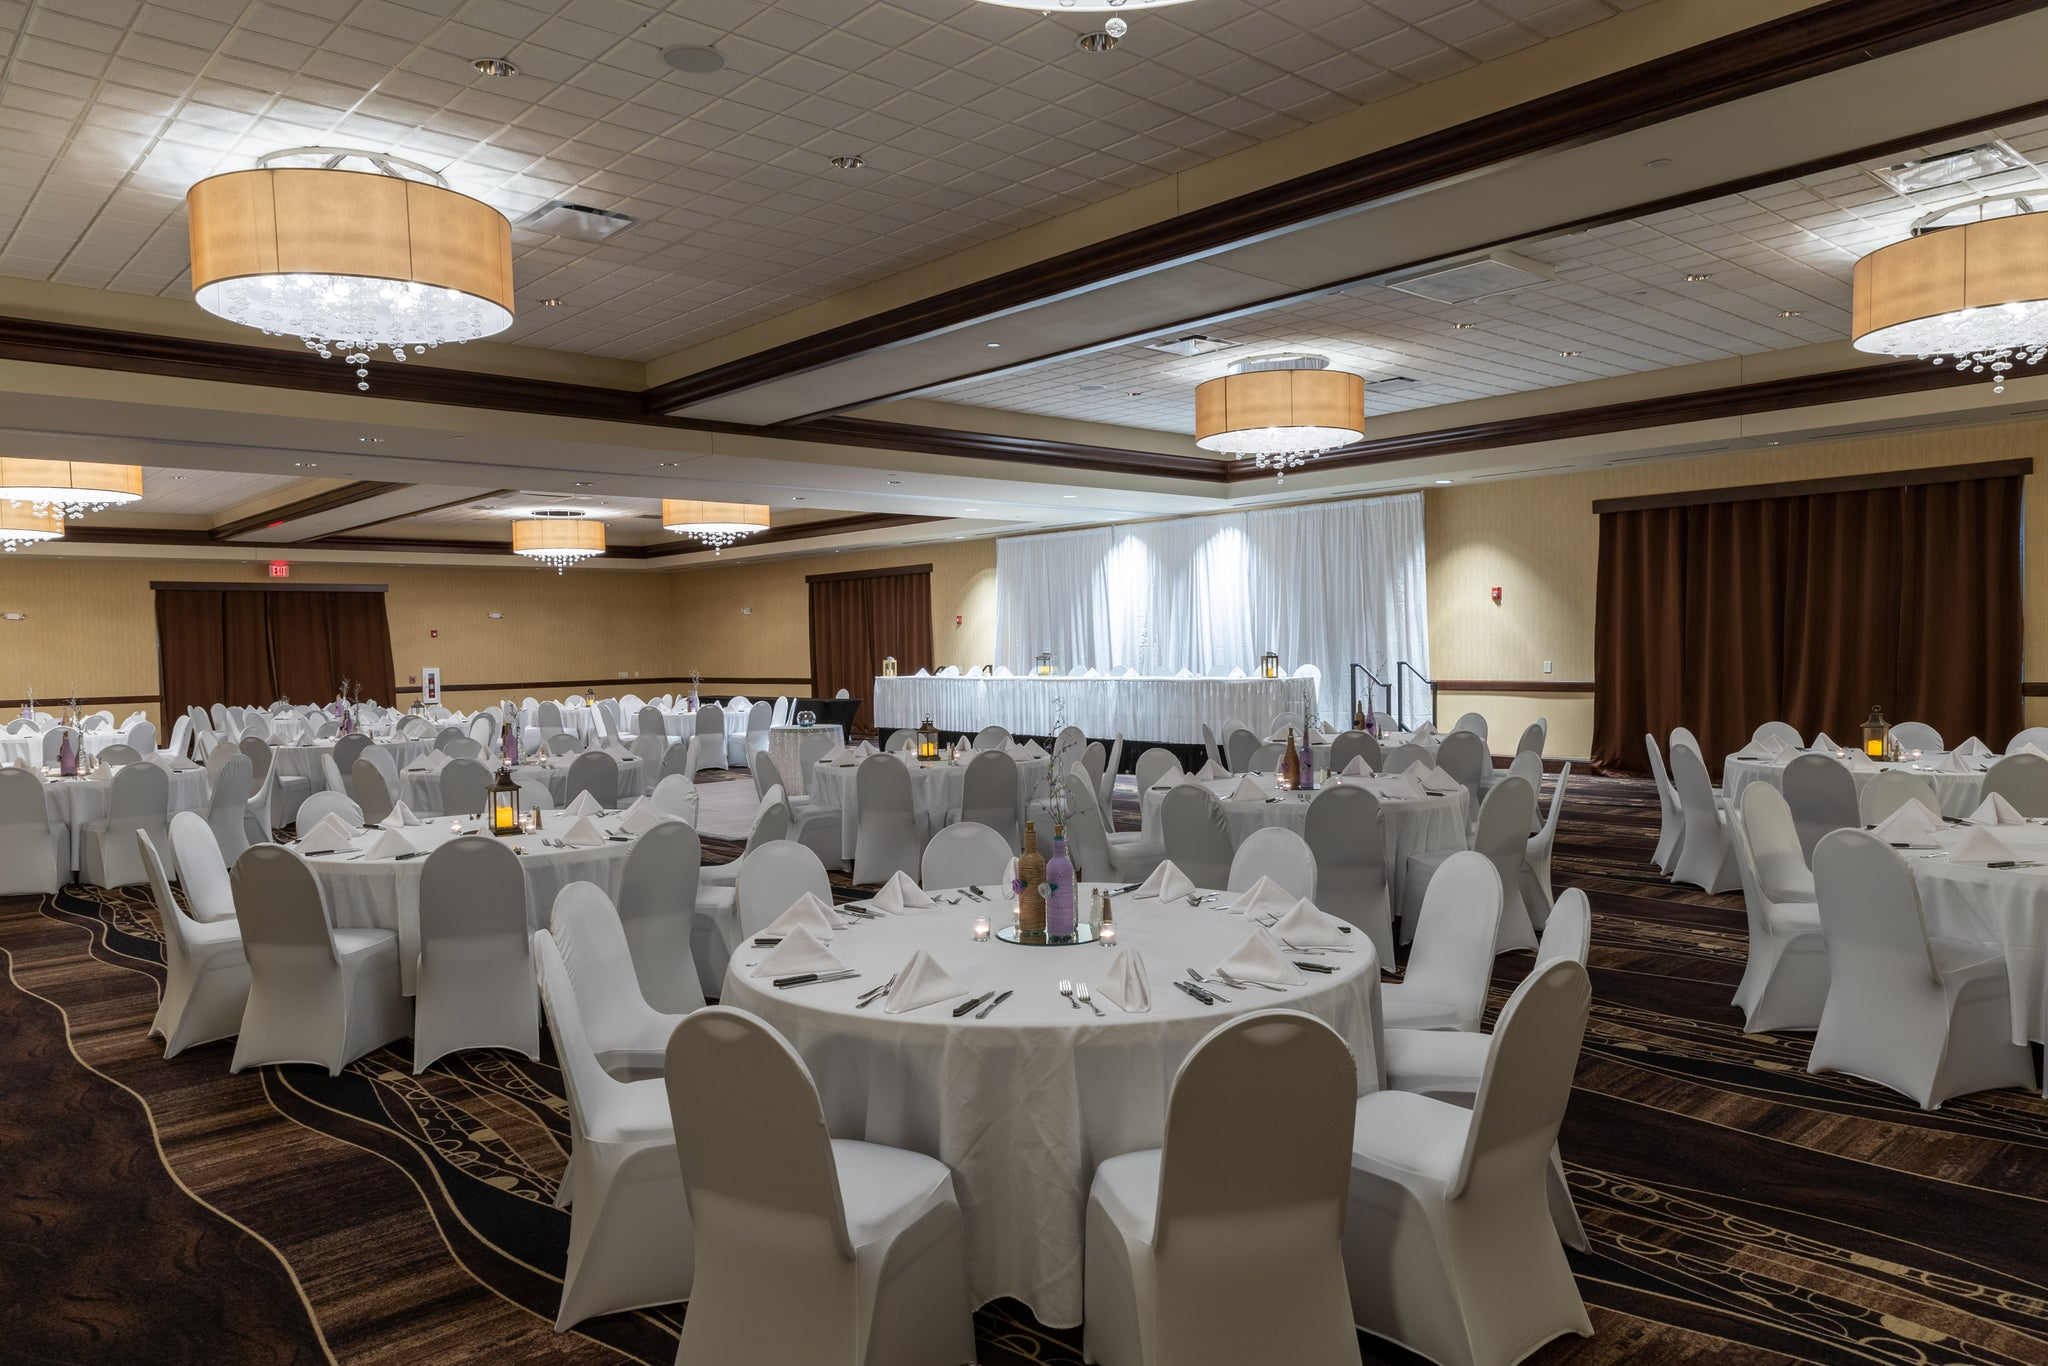 hilton garden inn event center